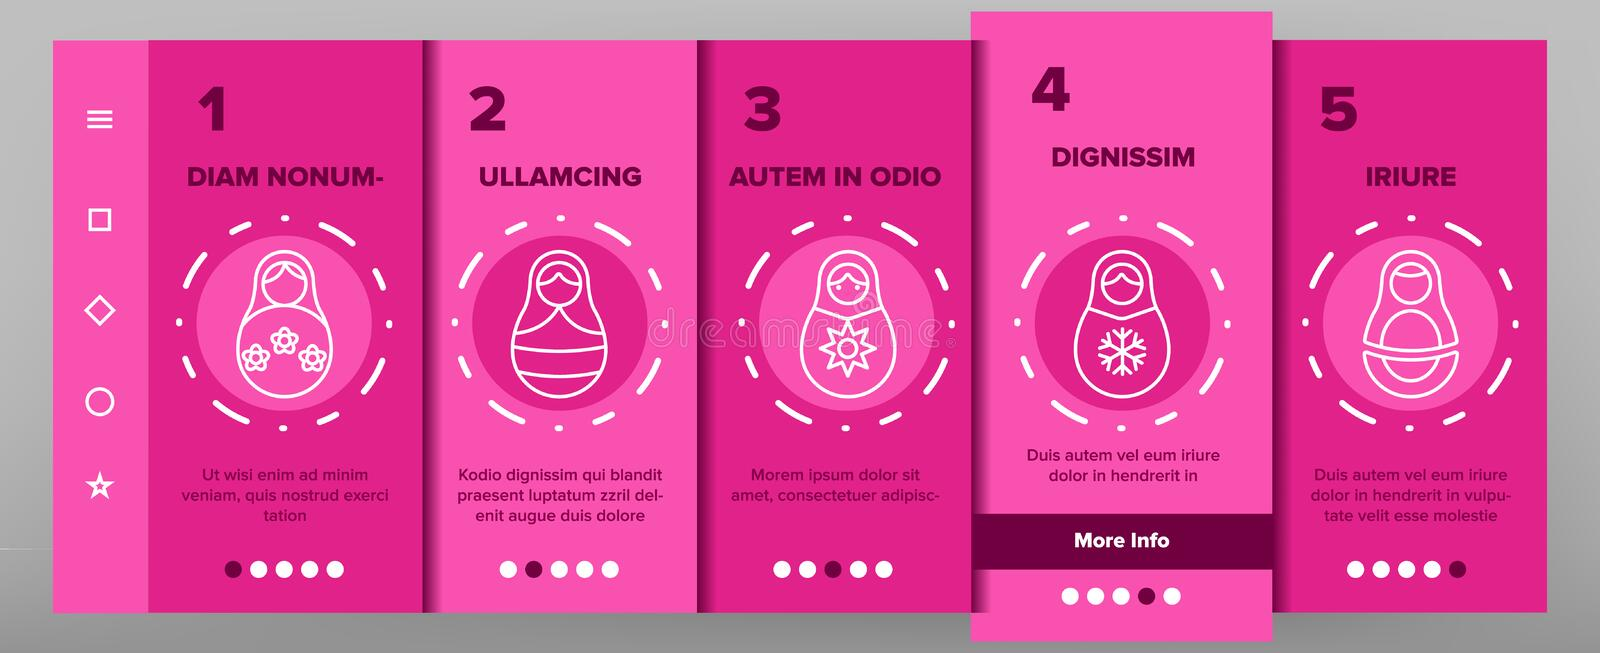 Matryoshka Toy Vector Onboarding royalty-vrije illustratie